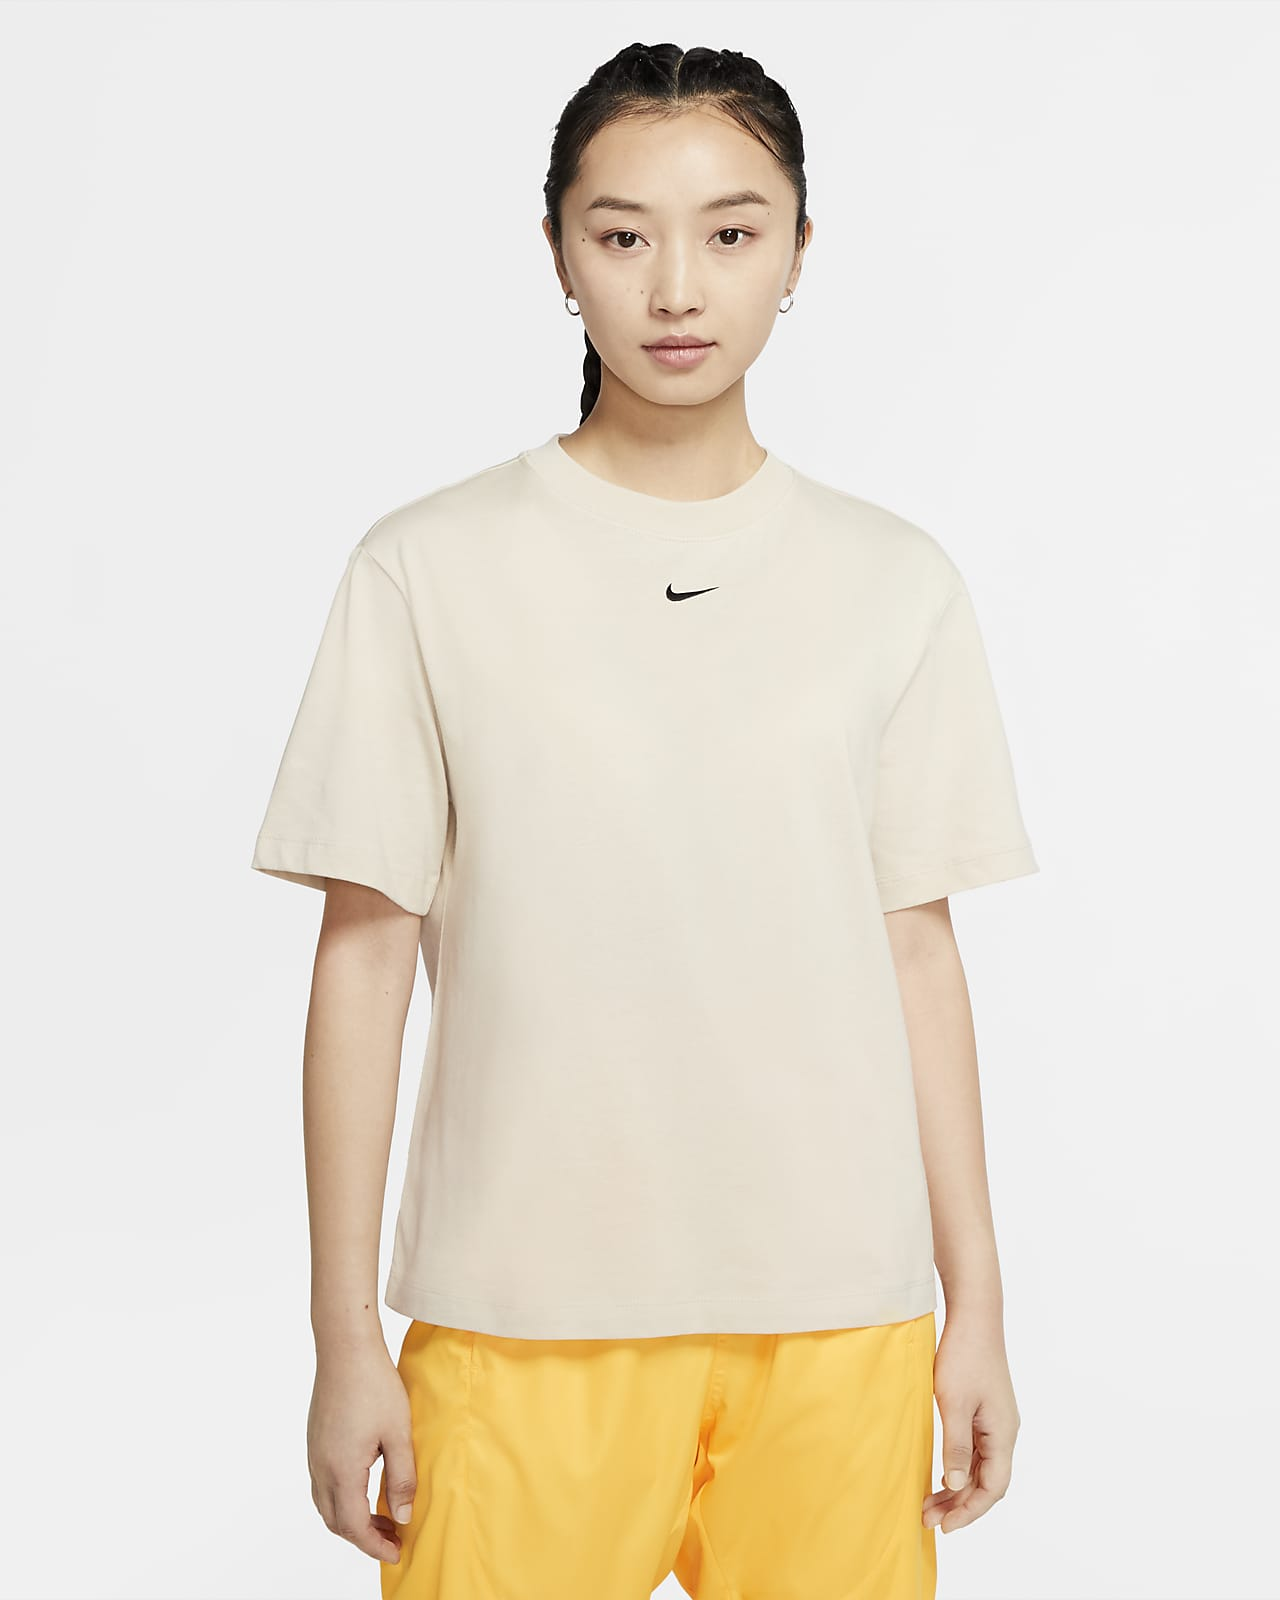 Nike Sportswear Essential Women's Short-Sleeve Top